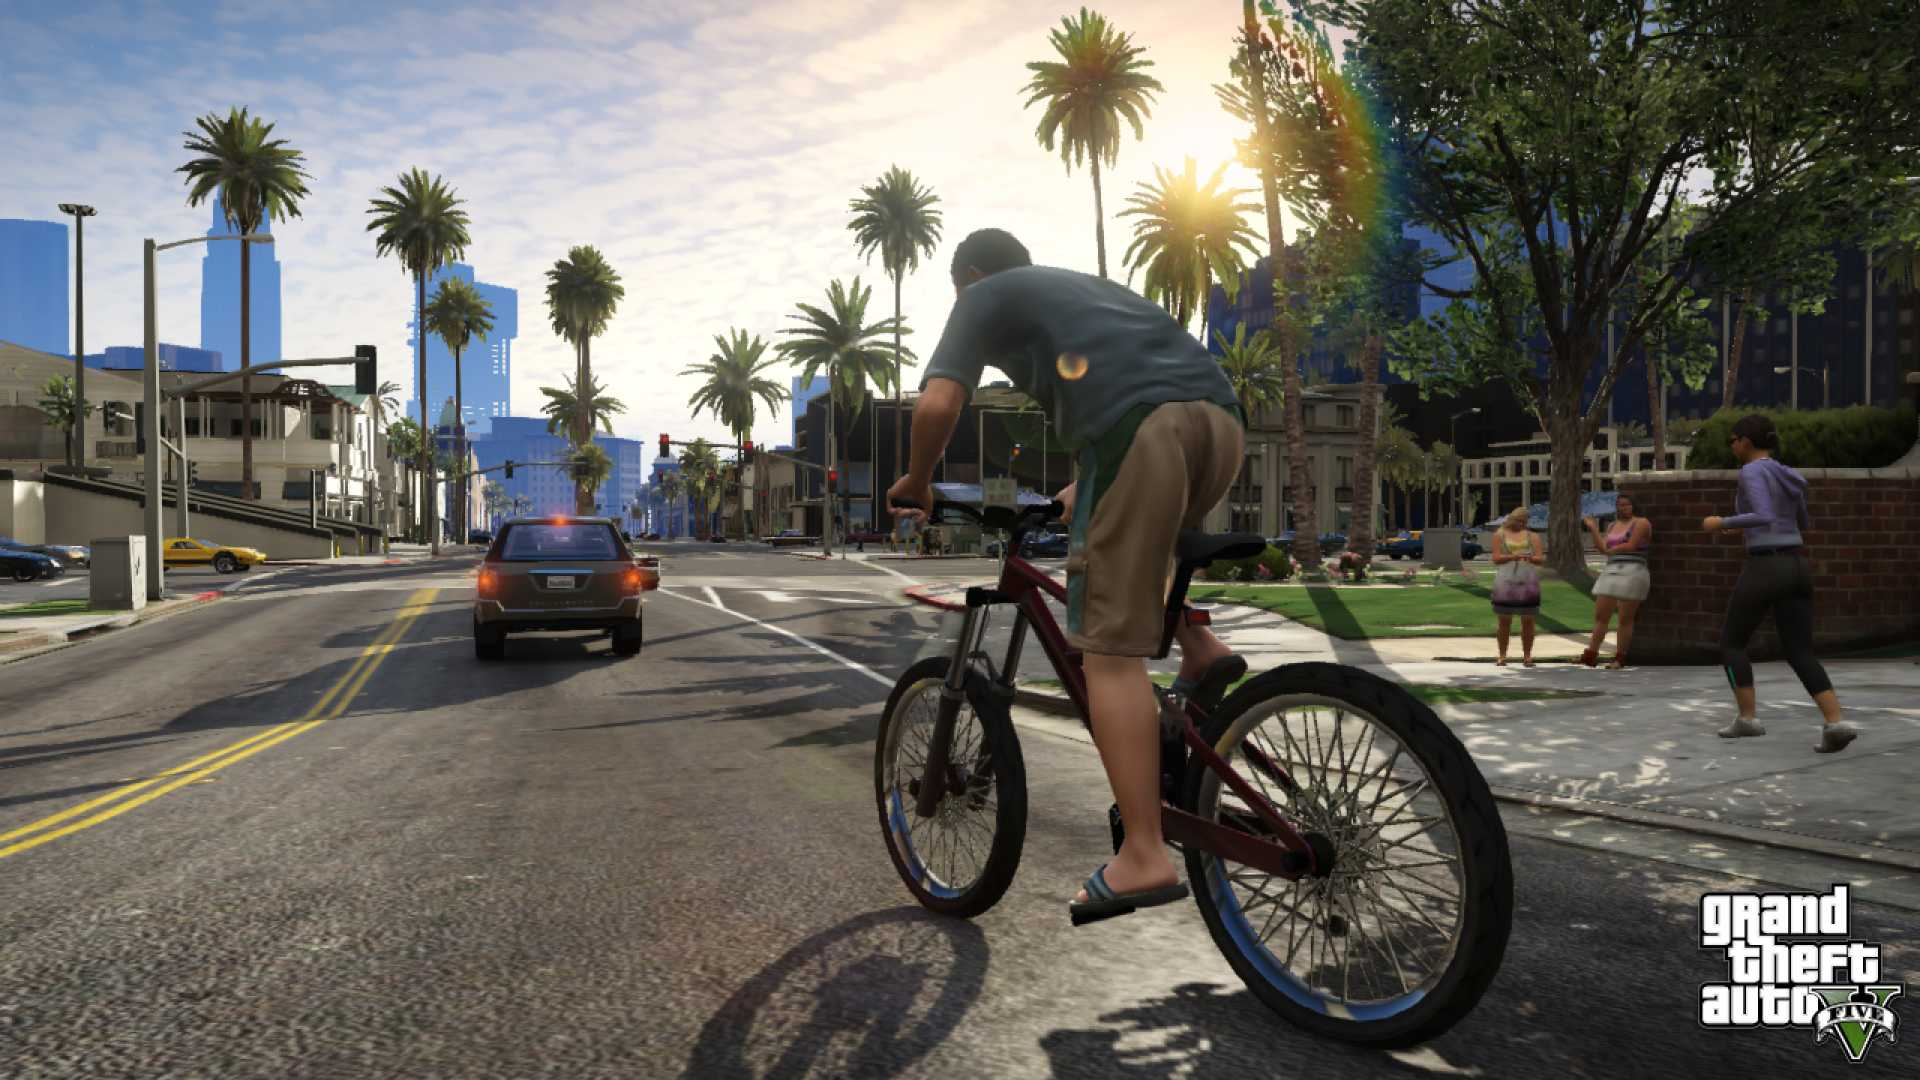 gta 5 gameplay screenshot